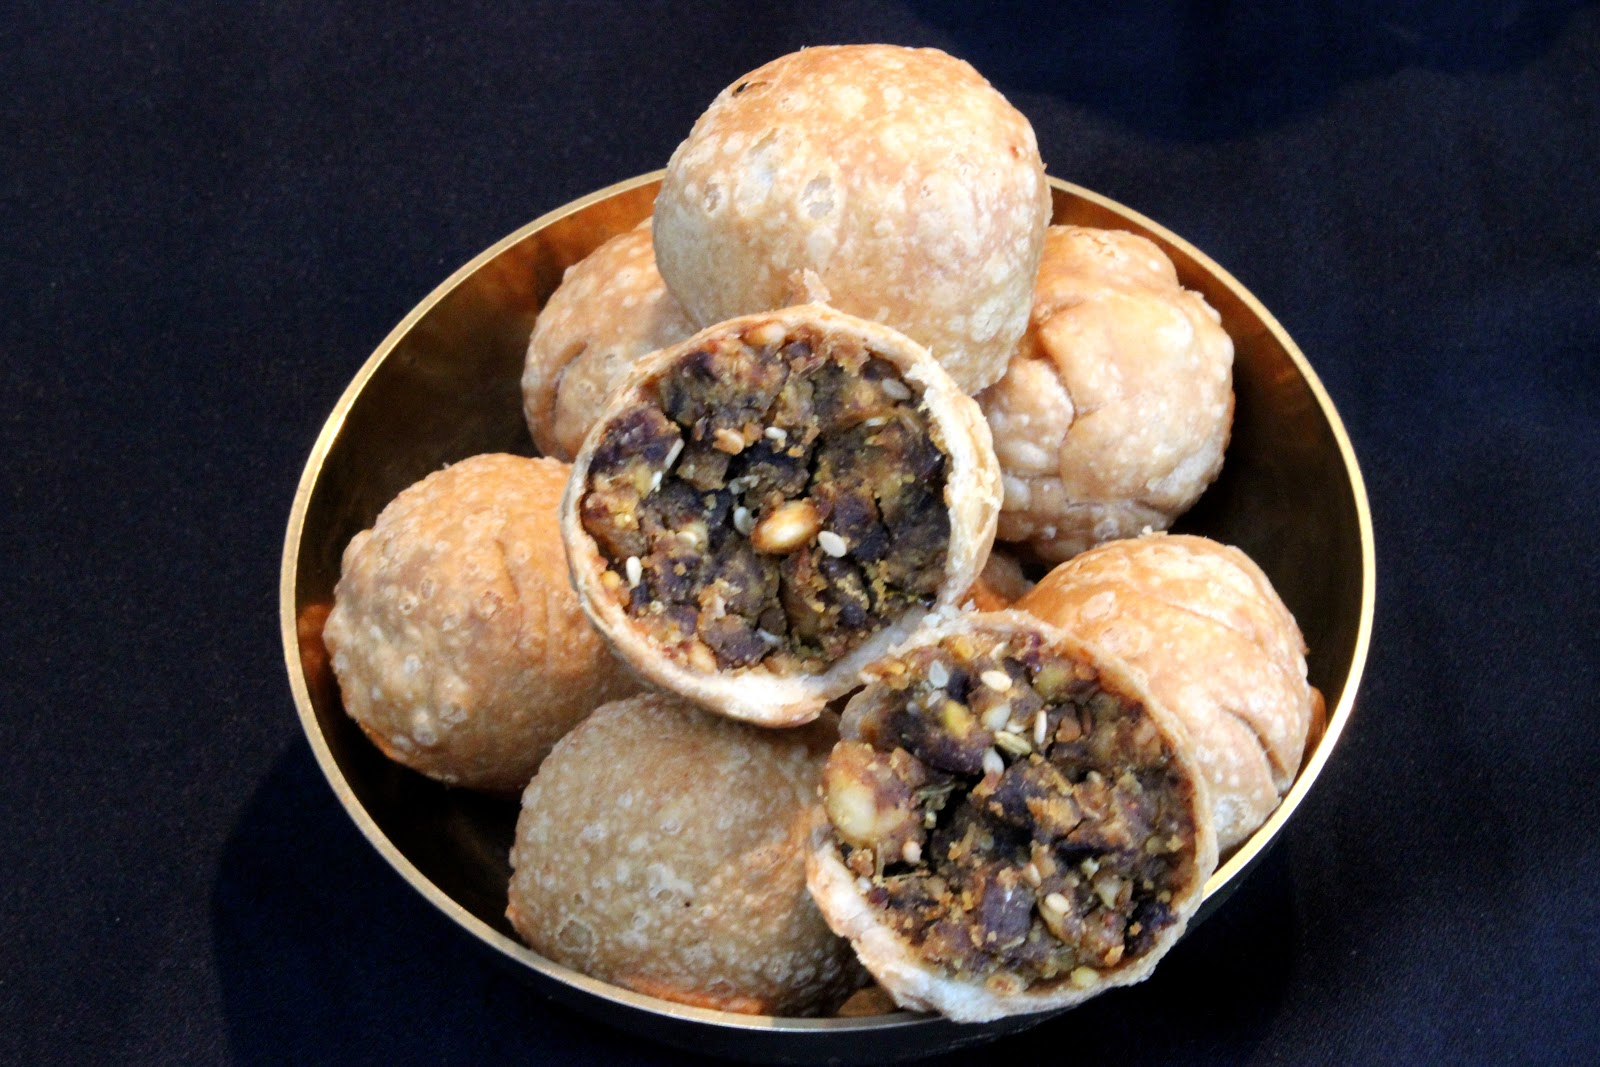 ... Sukha Mewa Kachori - Deep fried pastry filled with Dry Fruit and Nut